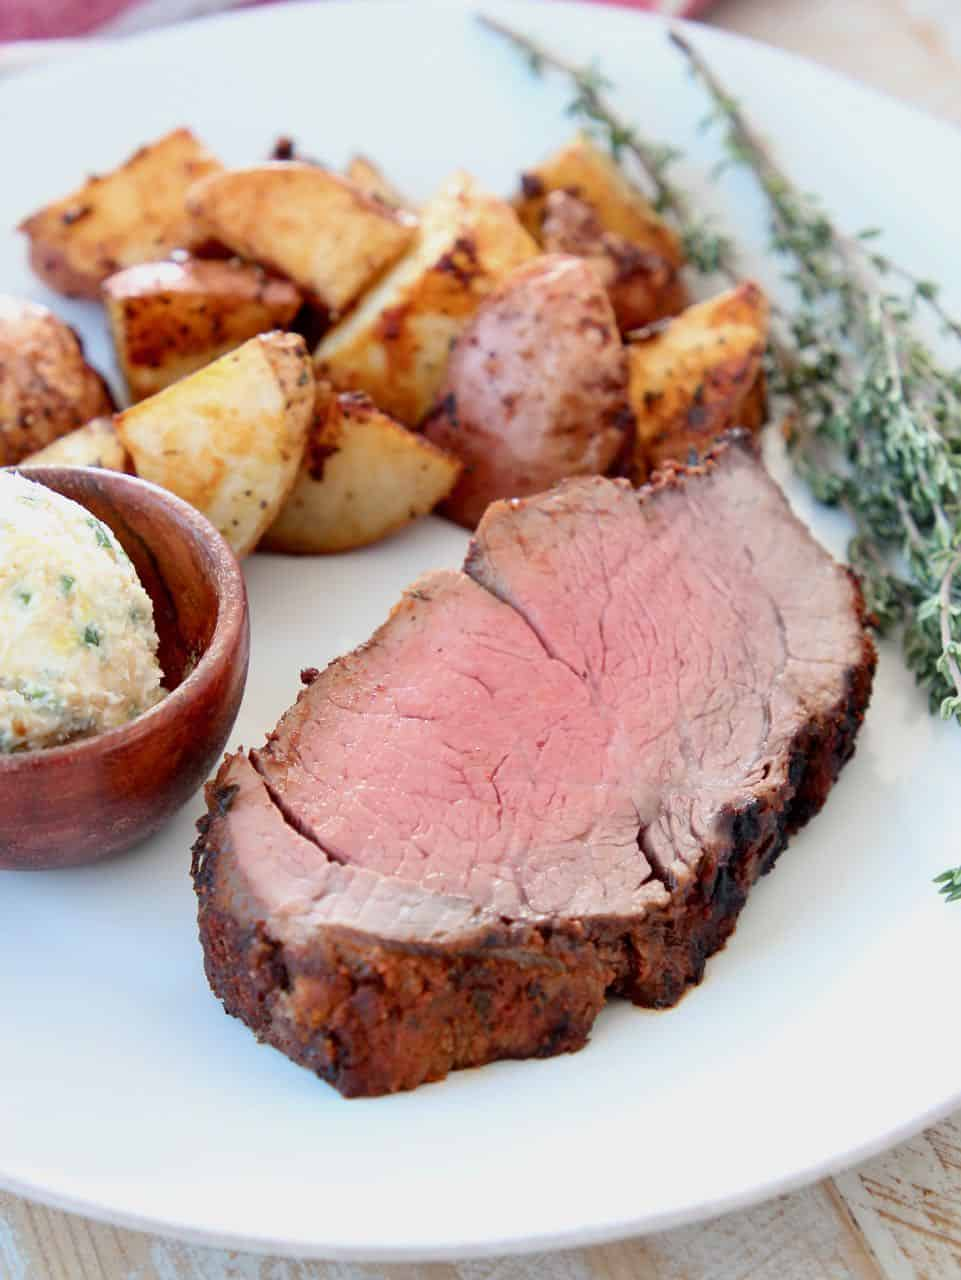 Thick sliced beef tenderloin on plate with herbs, potatoes and butter